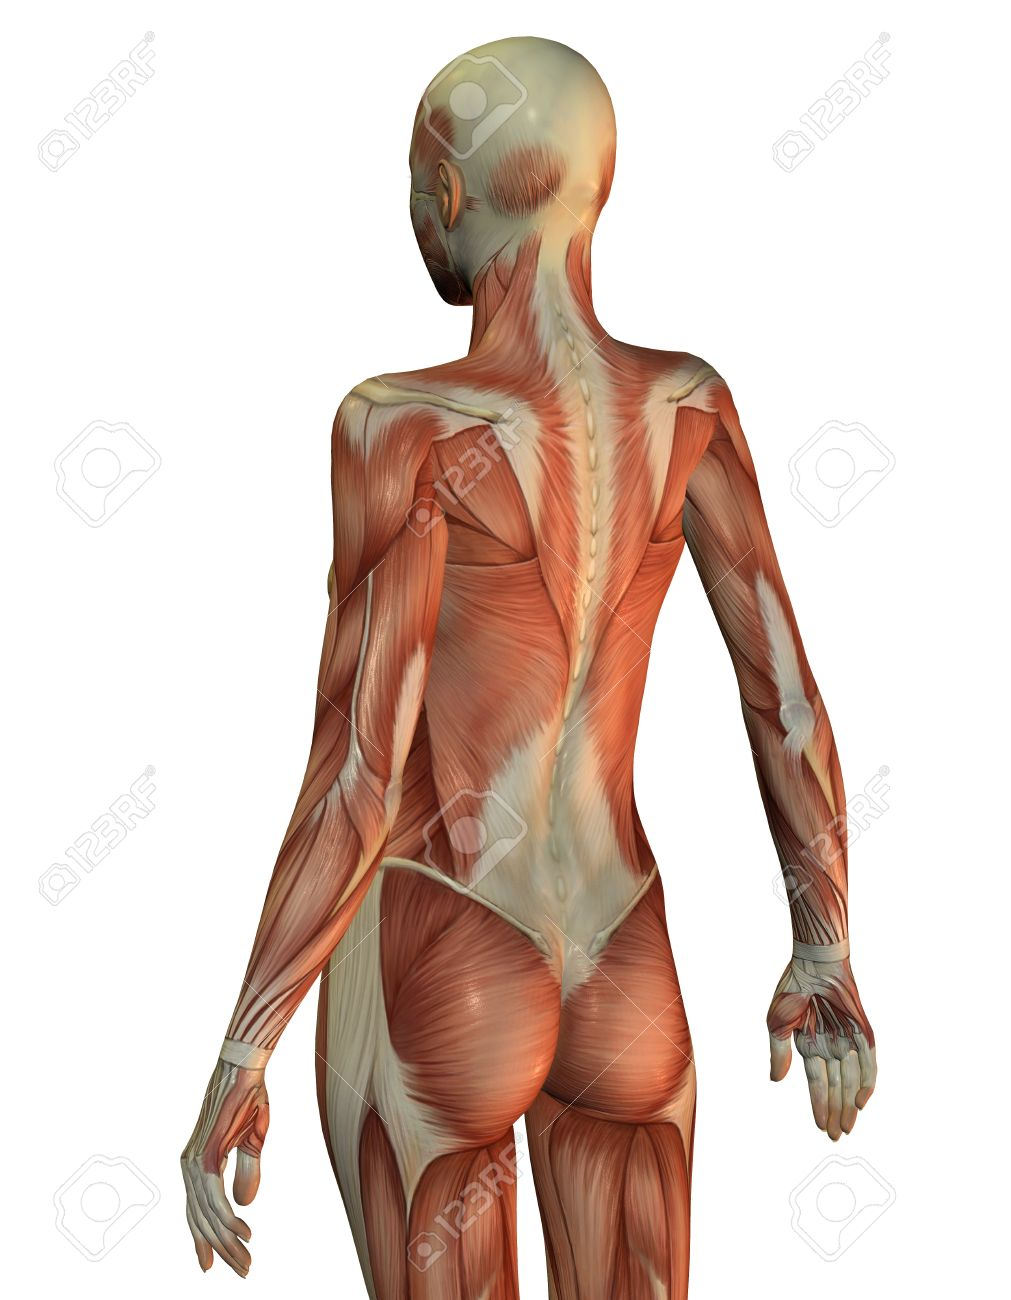 3d Rendering Of A Female Upper Body From Behind Stock Photo Picture